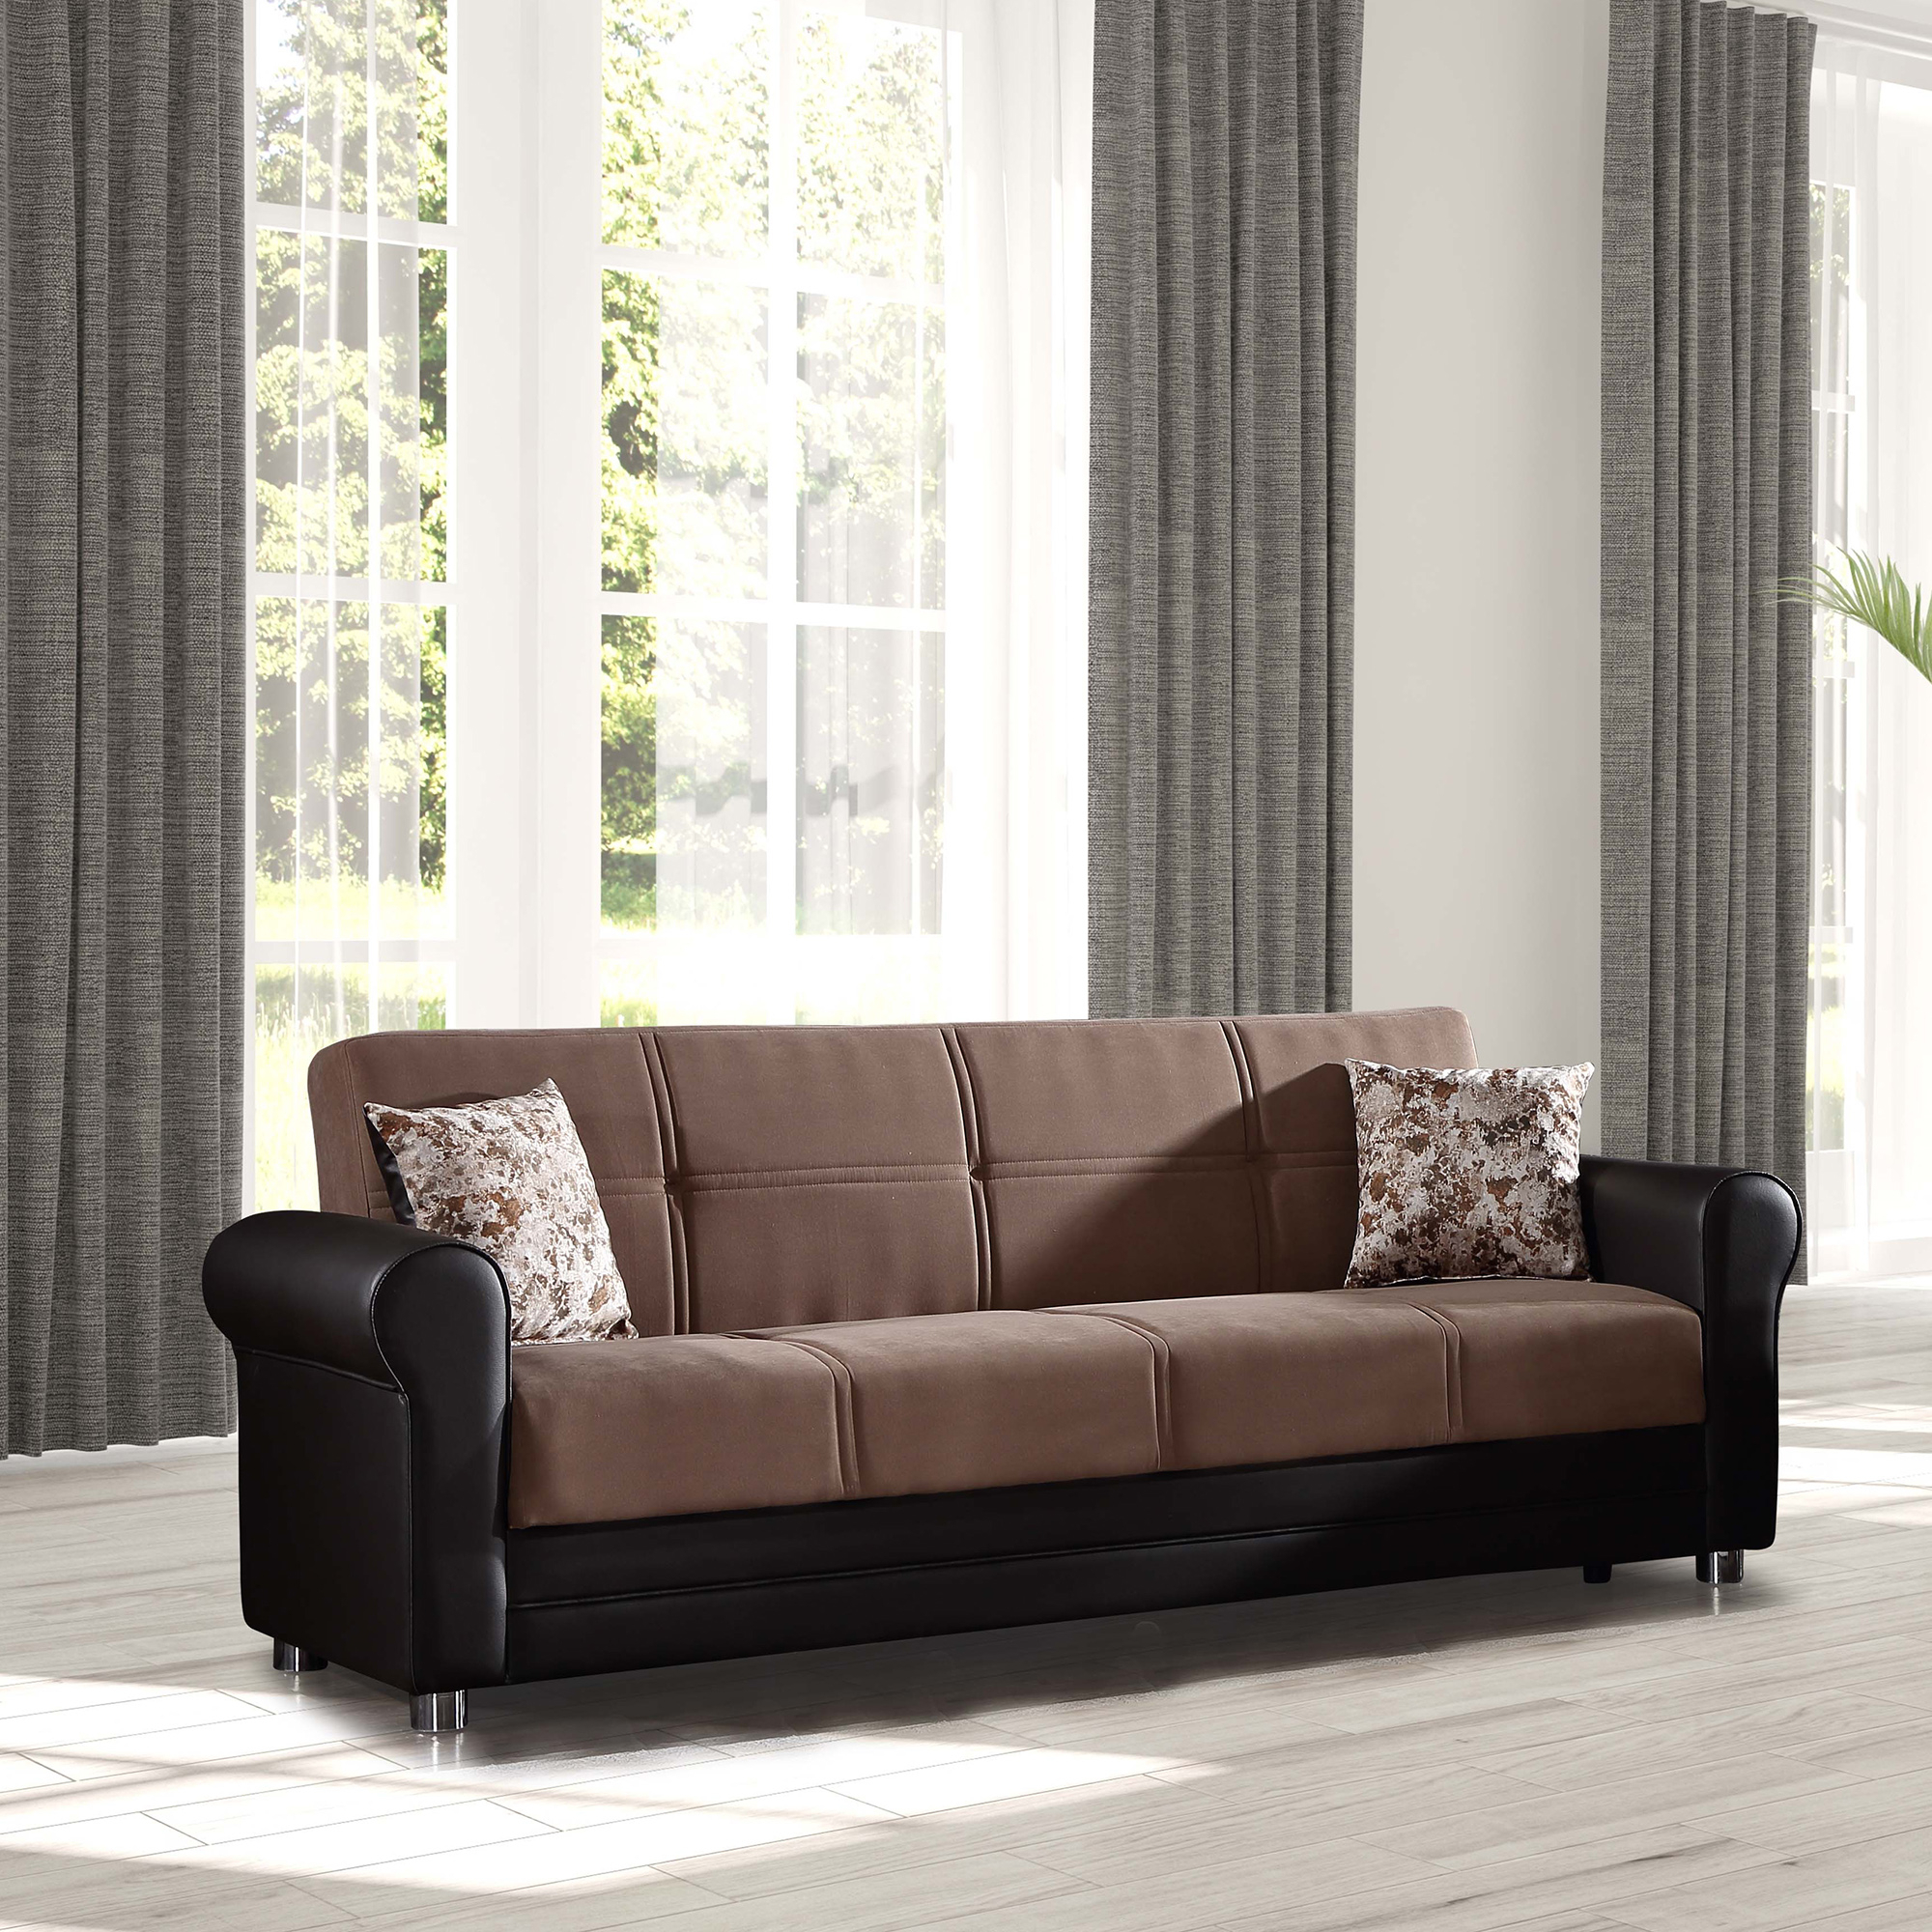 Avalon Sleeper Sofa Bed With Storage – Walmart With Regard To Lounge Sofas And Chairs (View 4 of 15)